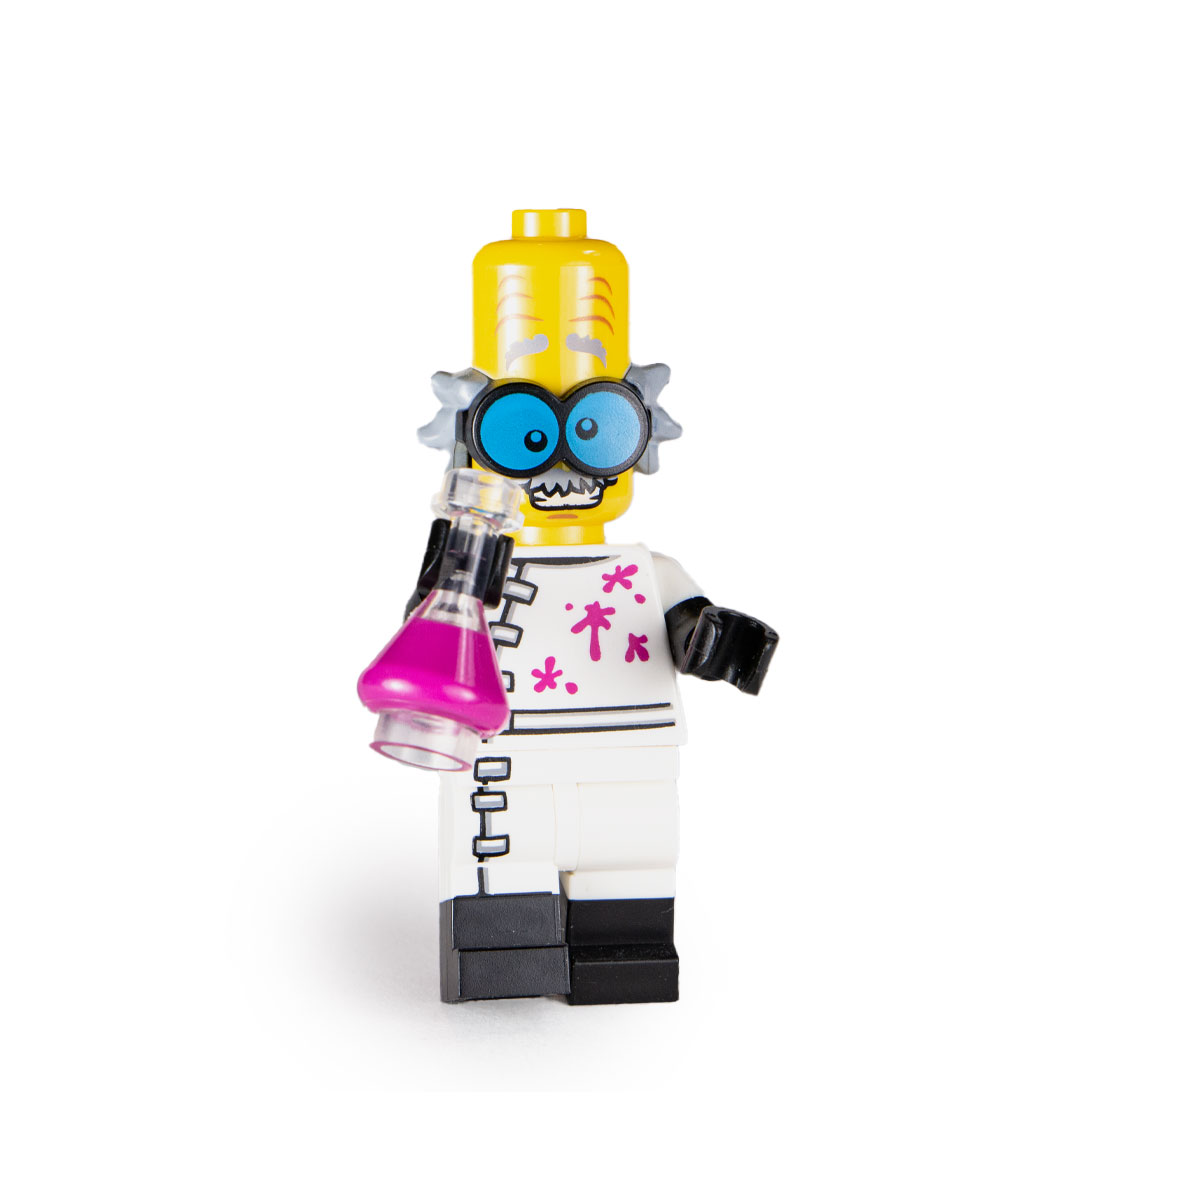 Lego Monster Scientist Collectible Minifigures 71010 Series 14